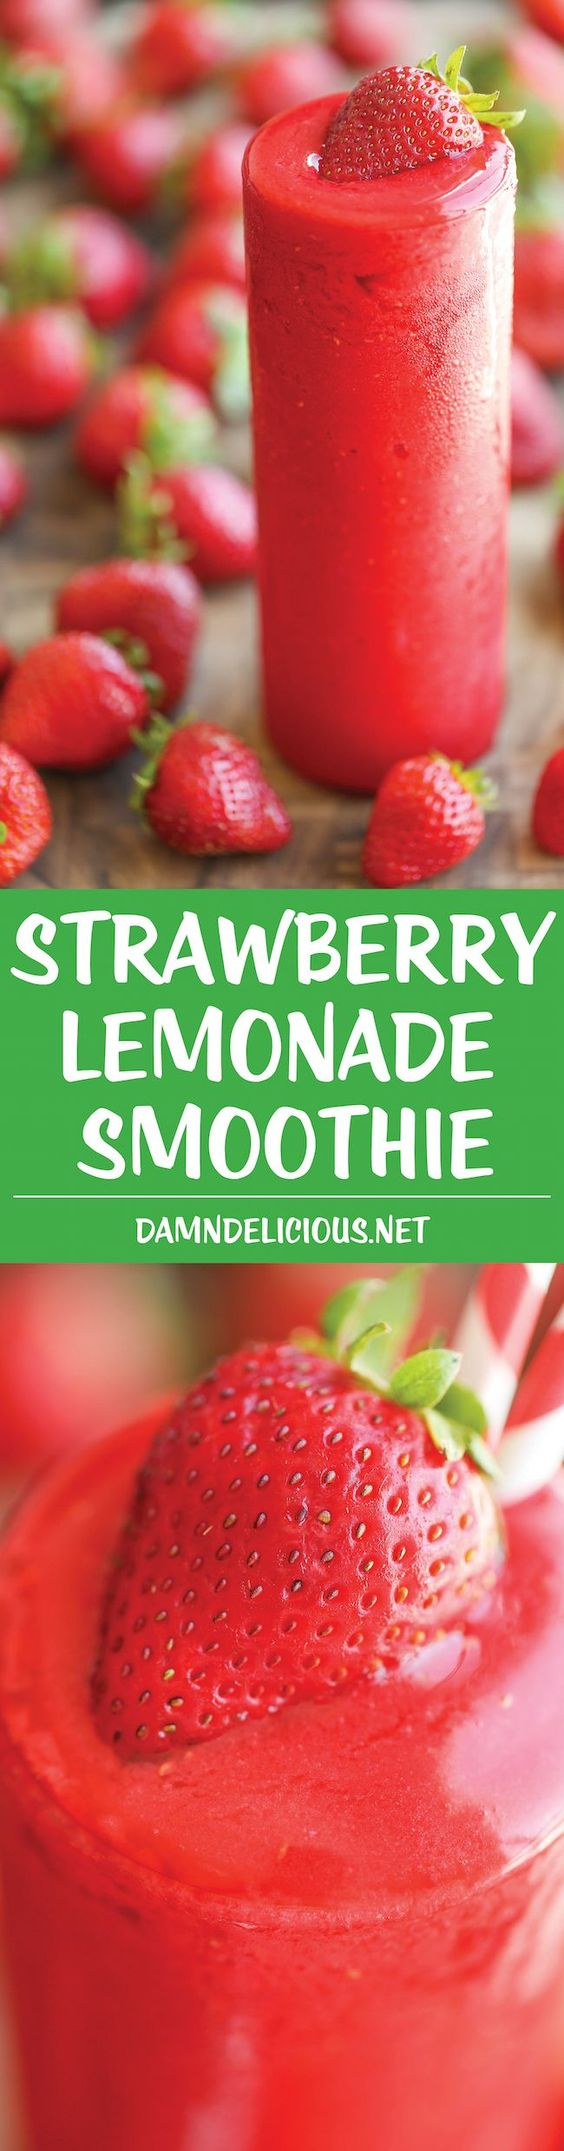 •Strawberry Lemonade Smoothie - Sweet, tangy and wonderfully refreshing with just 4 ingredients, made completely from scratch. No frozen concentrate here!•